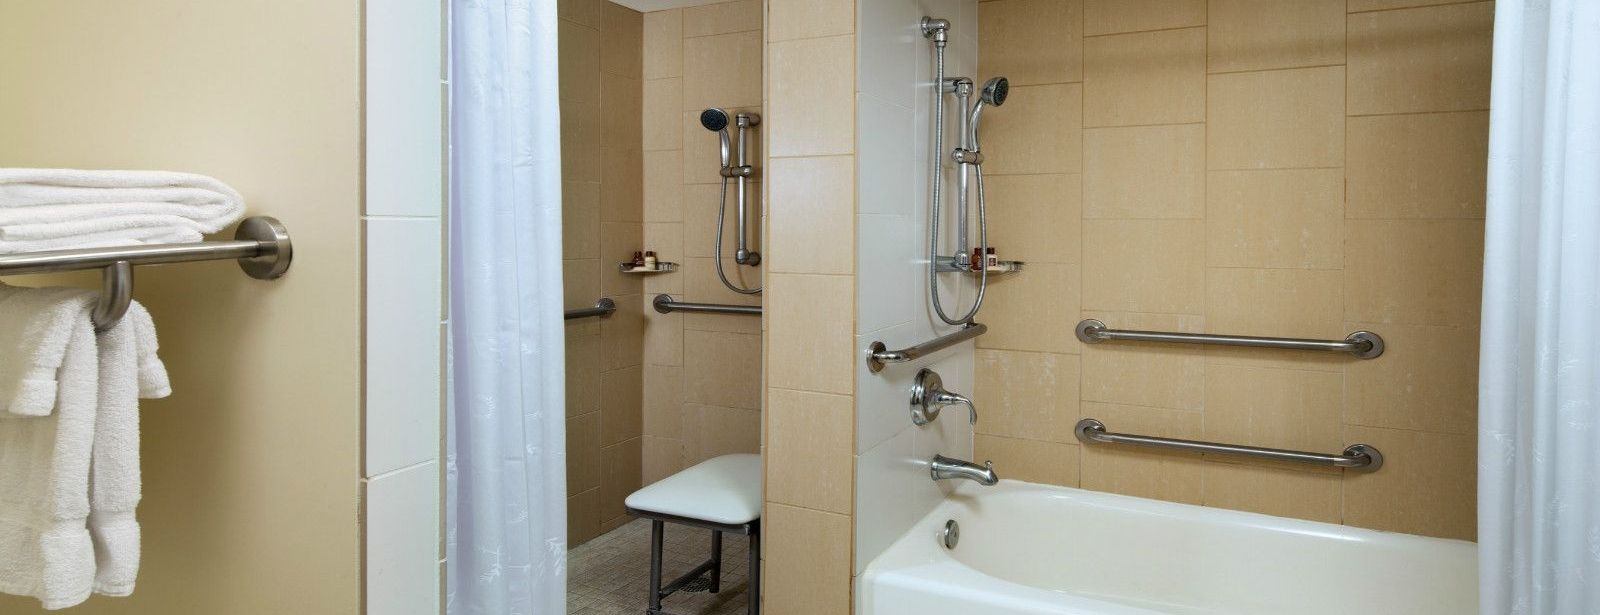 Oahu Hotel Rooms - Accessible Bathroom